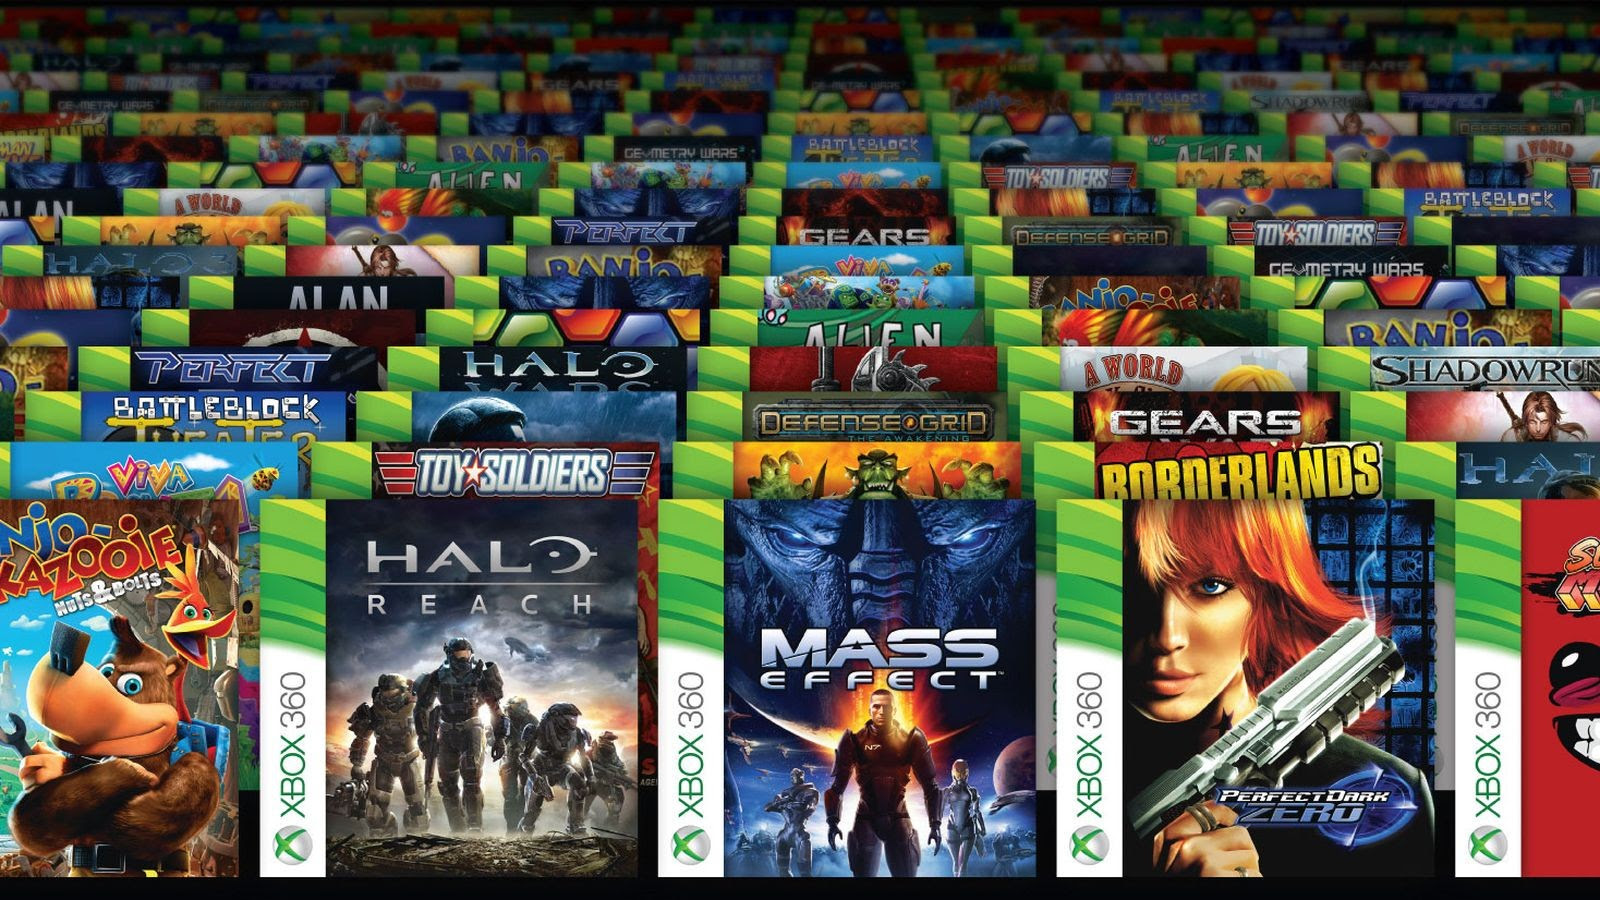 (Update) New report claims that Xbox One owners spend less than 2% of their time using backward compatibility screenshot